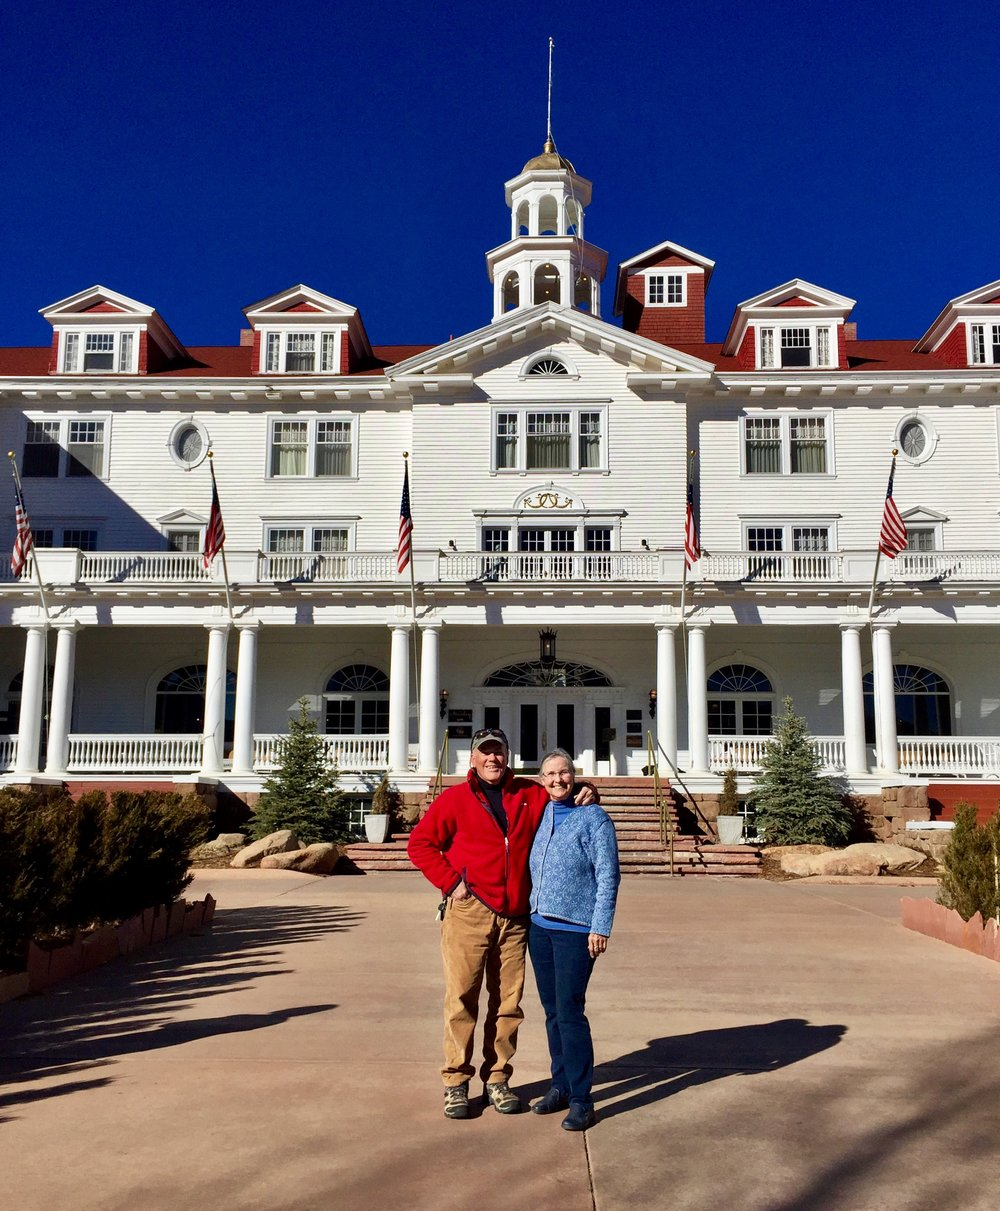 The Stanley Hotel's front entry